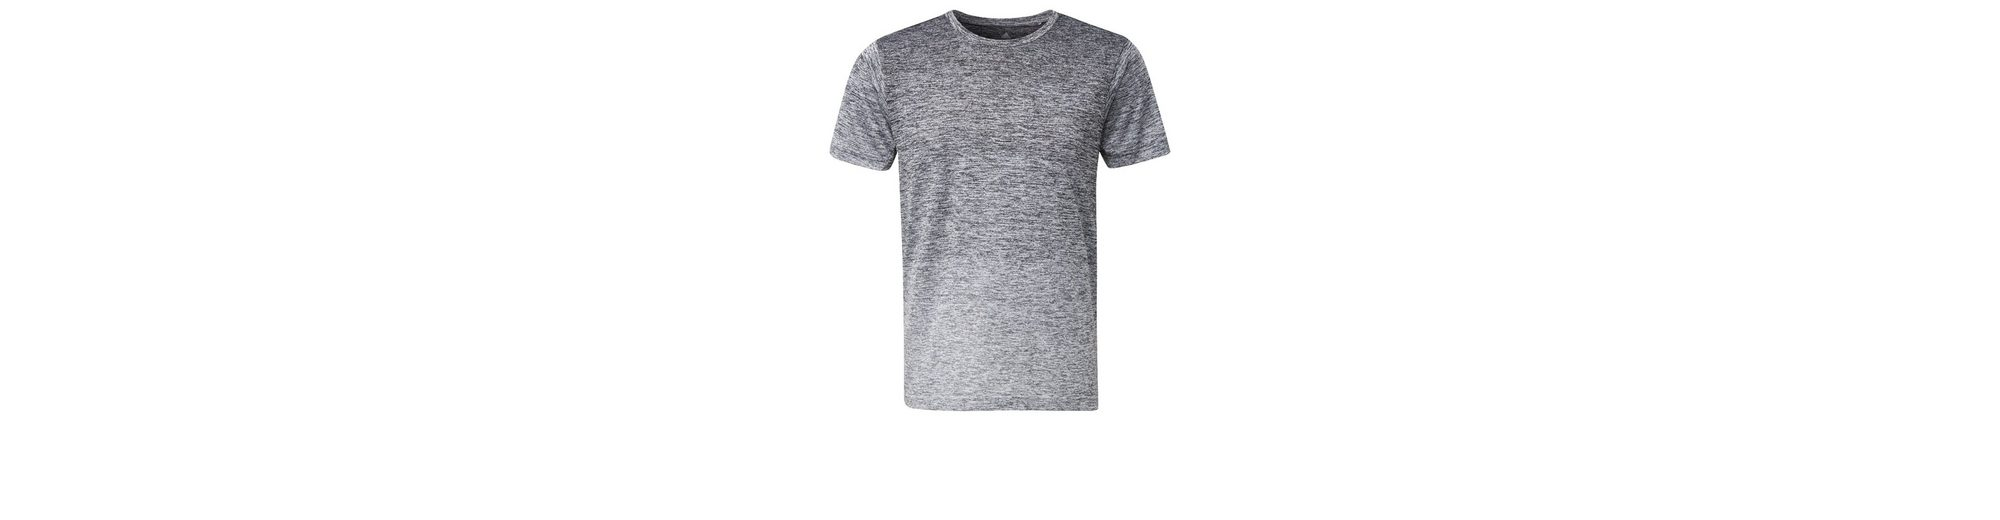 adidas Performance T-Shirt FreeLift Gradient T-Shirt Günstige Preise tJGMej